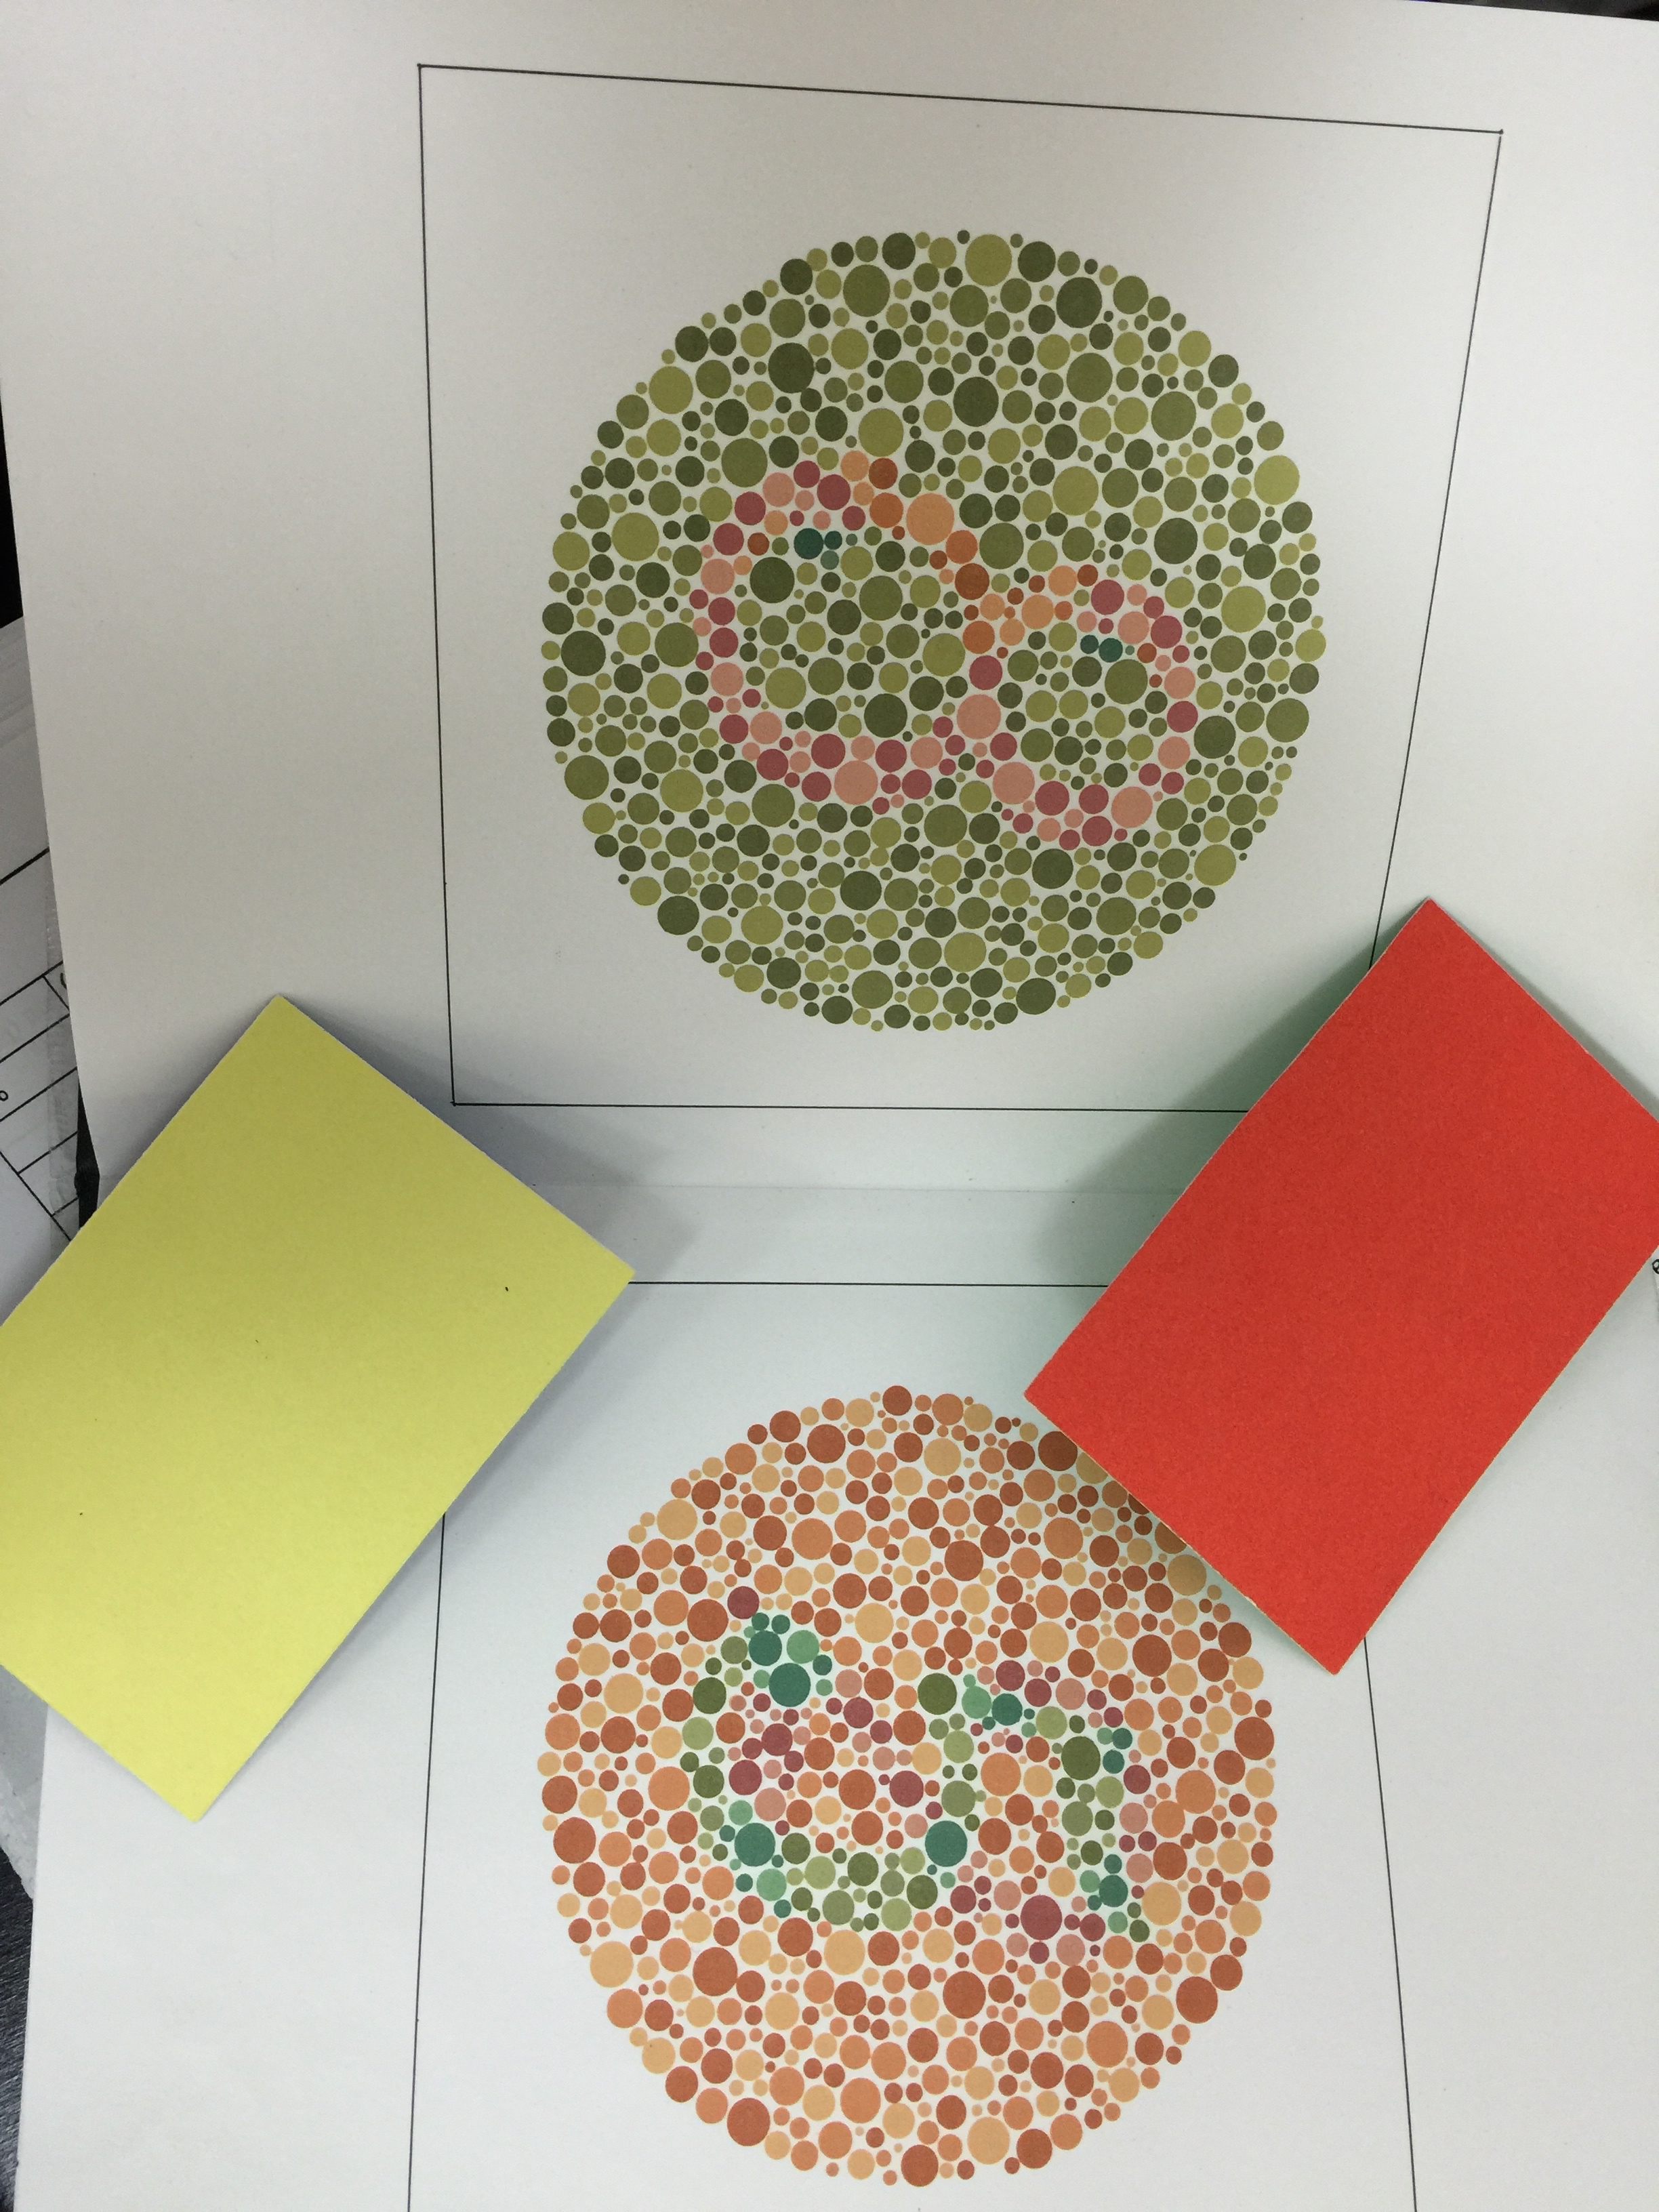 Types of Color Vision Tests AOPA dotphysicalblo